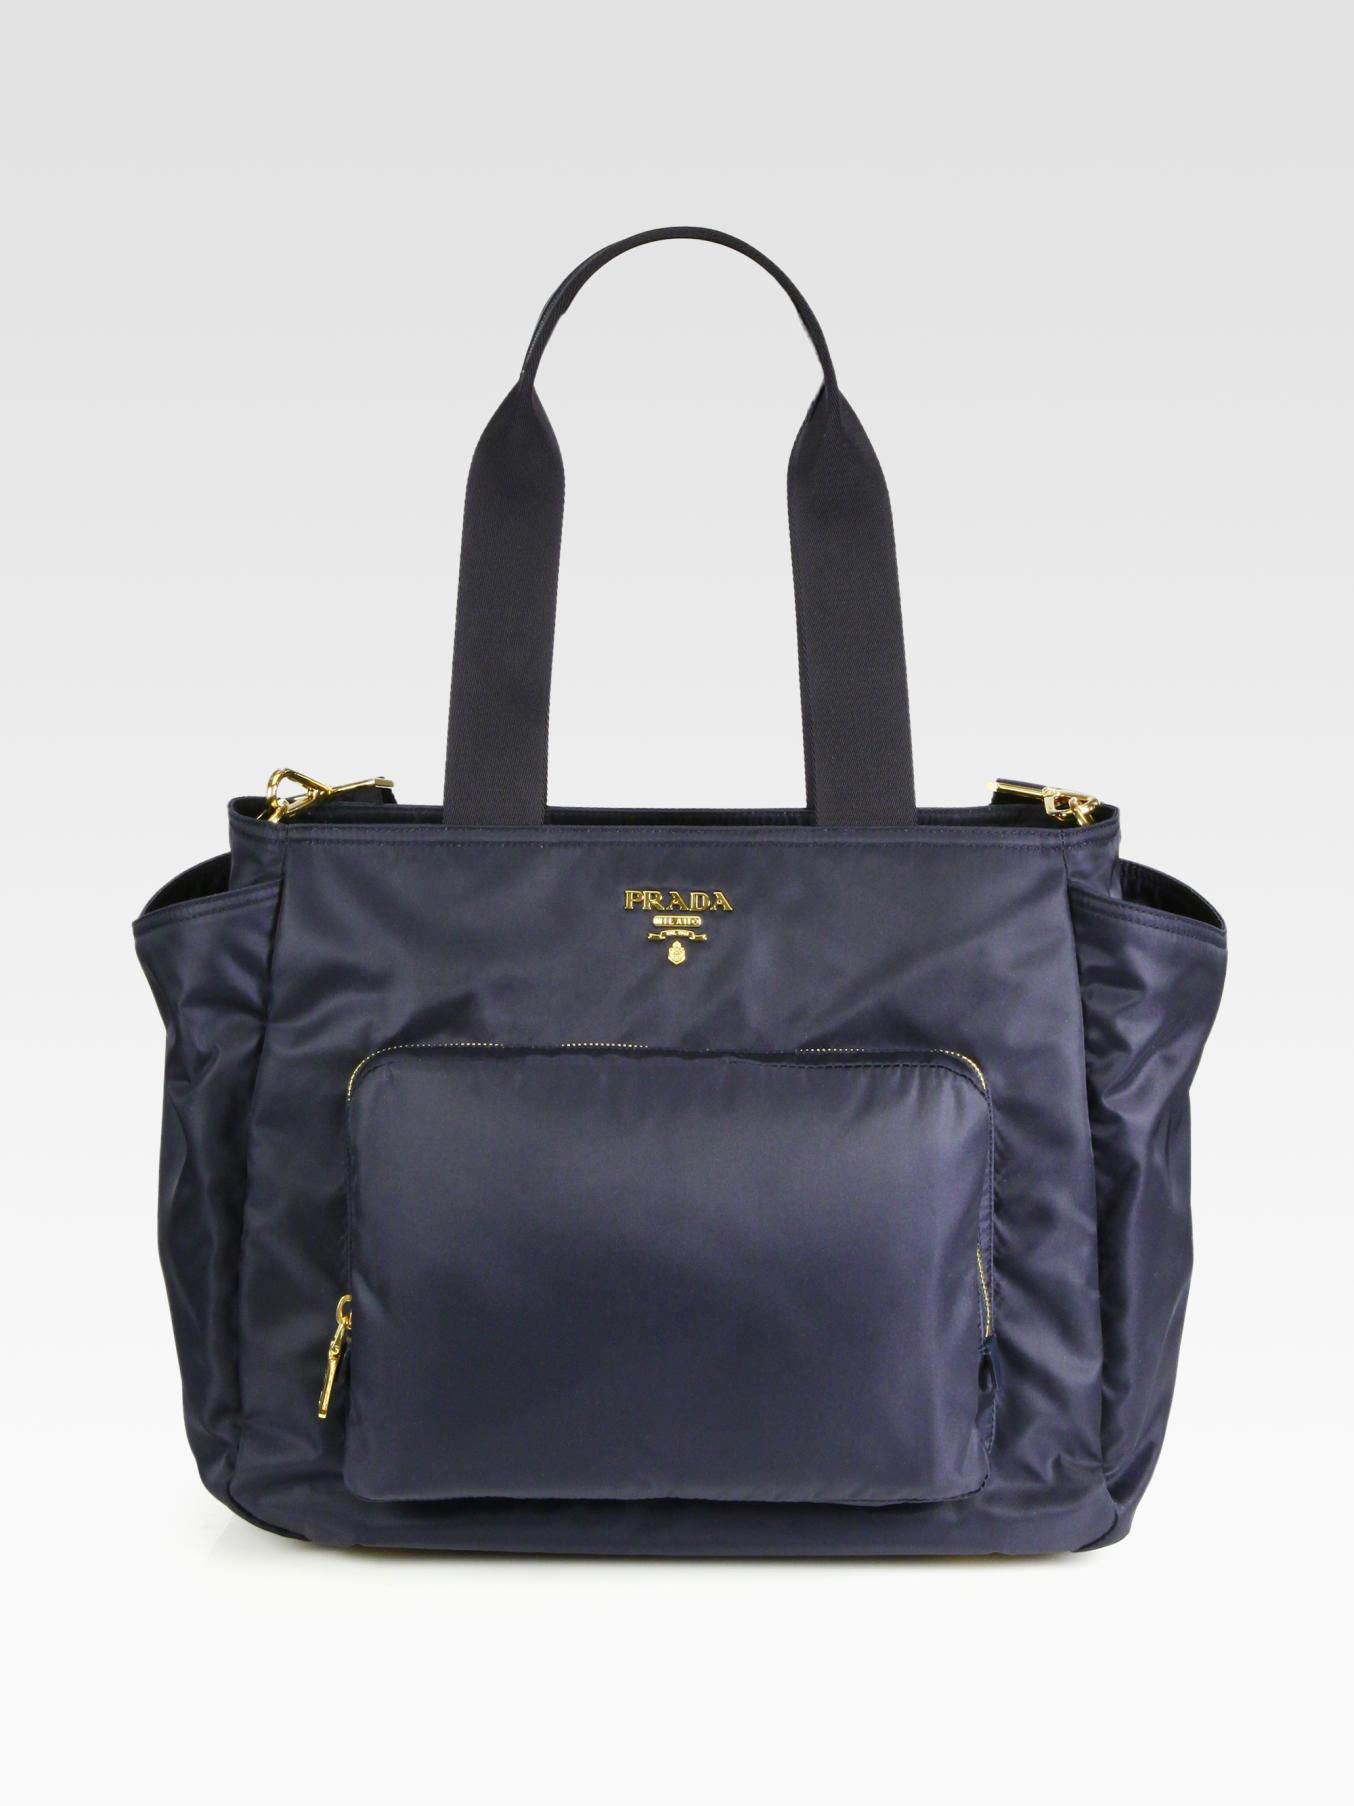 prada canvas messenger bag - prada-blue-nylon-baby-bag-product-1-5729152-743584740.jpeg